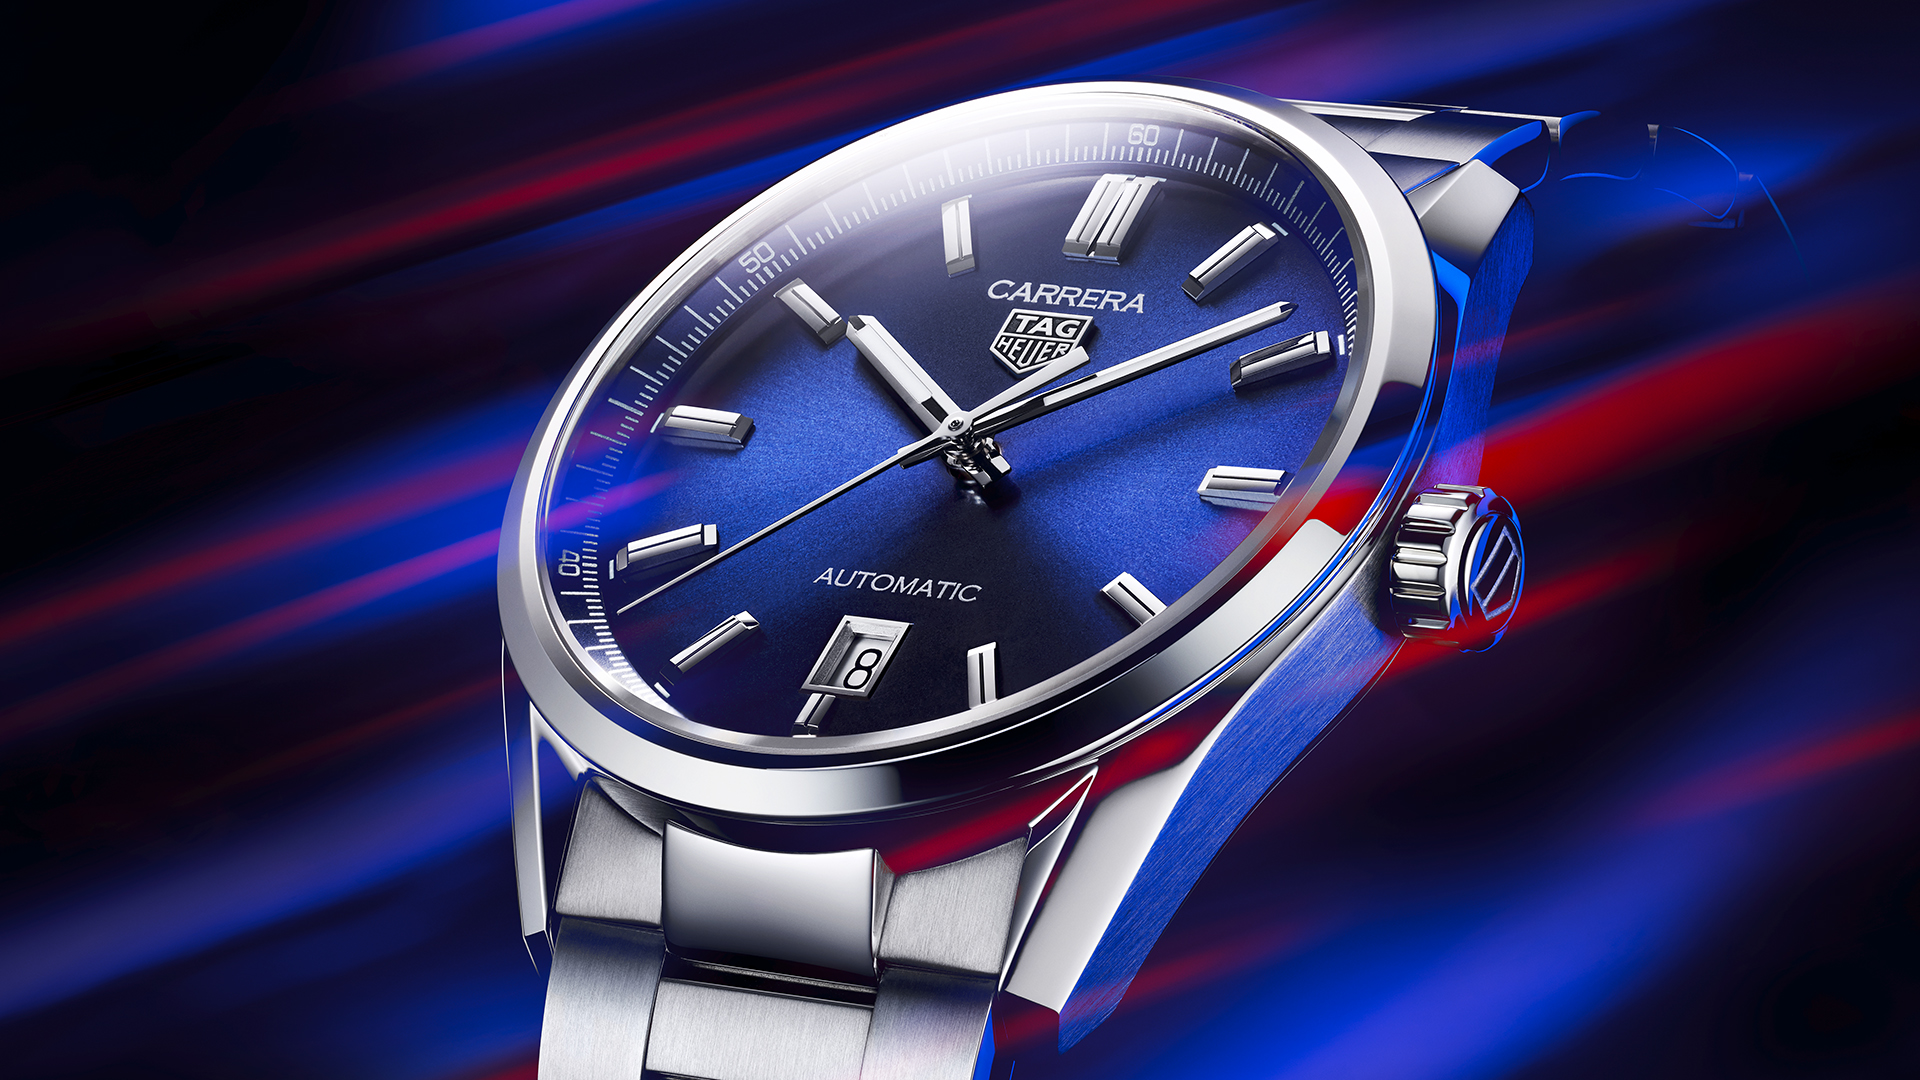 VIDEO: The TAG Heuer Three Hands Collection refines its offering by going back to basics.